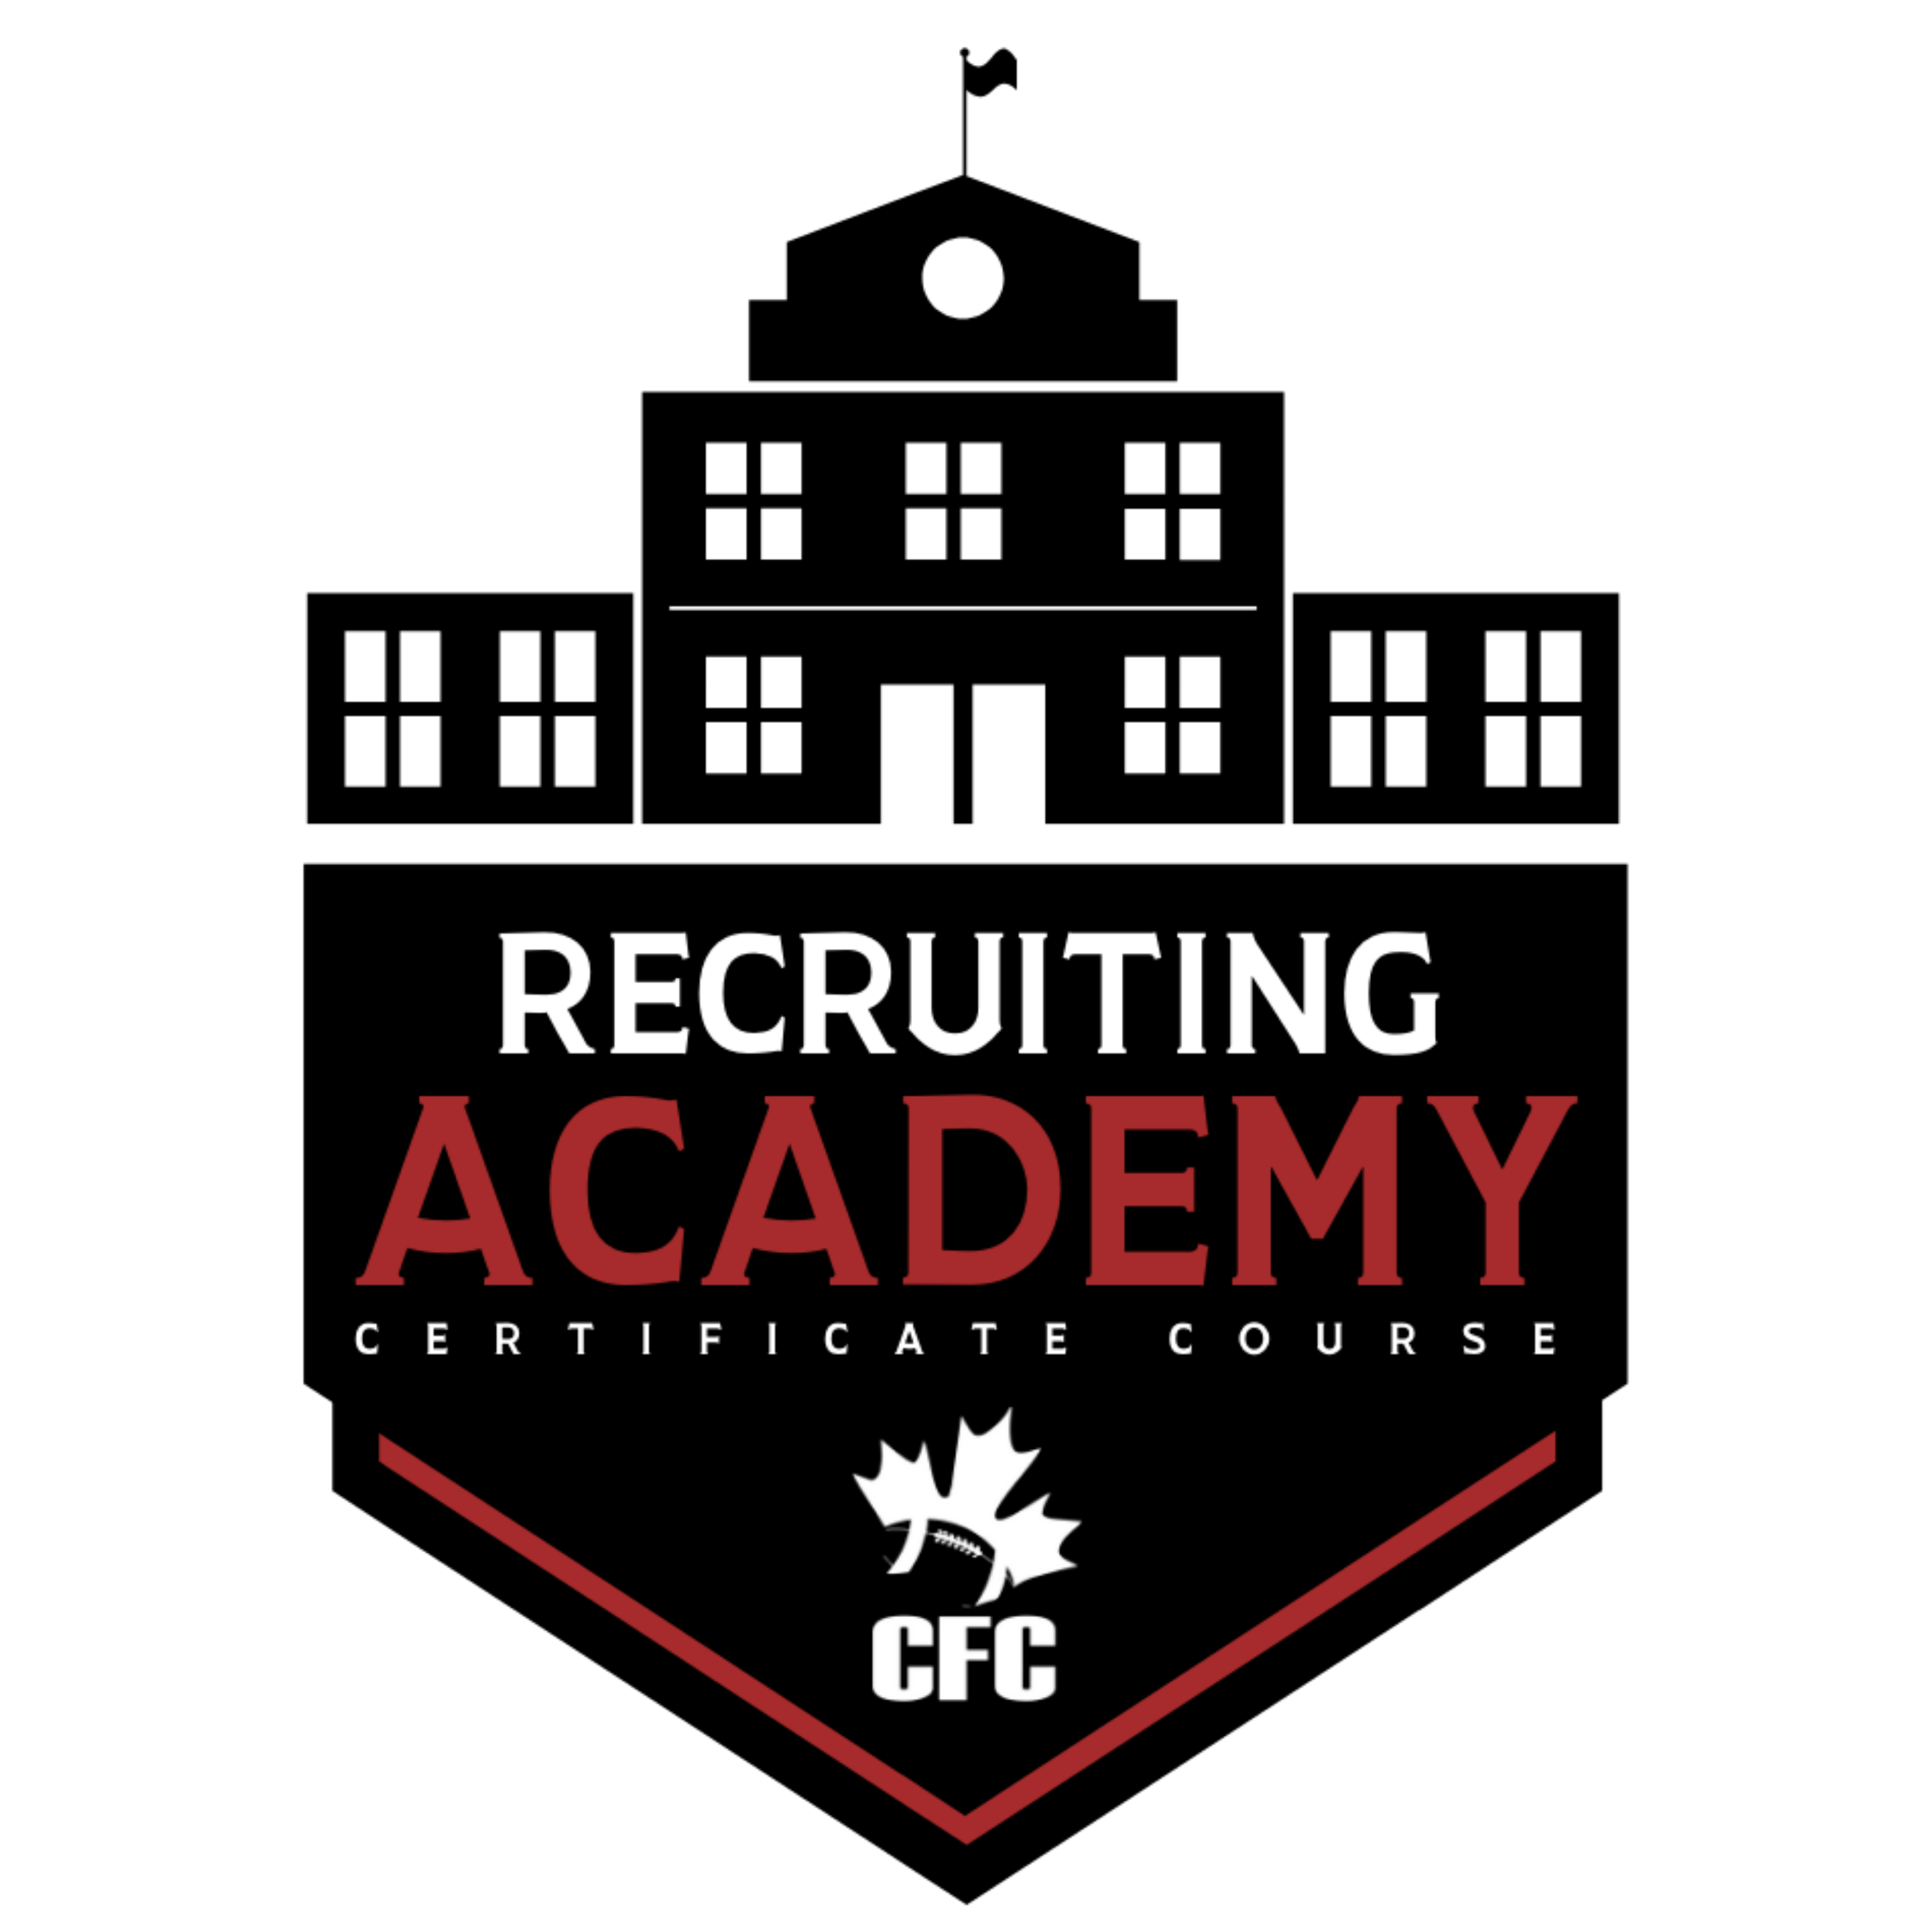 7 REASONS TO JOIN </br> THE RECRUITING ACADEMY